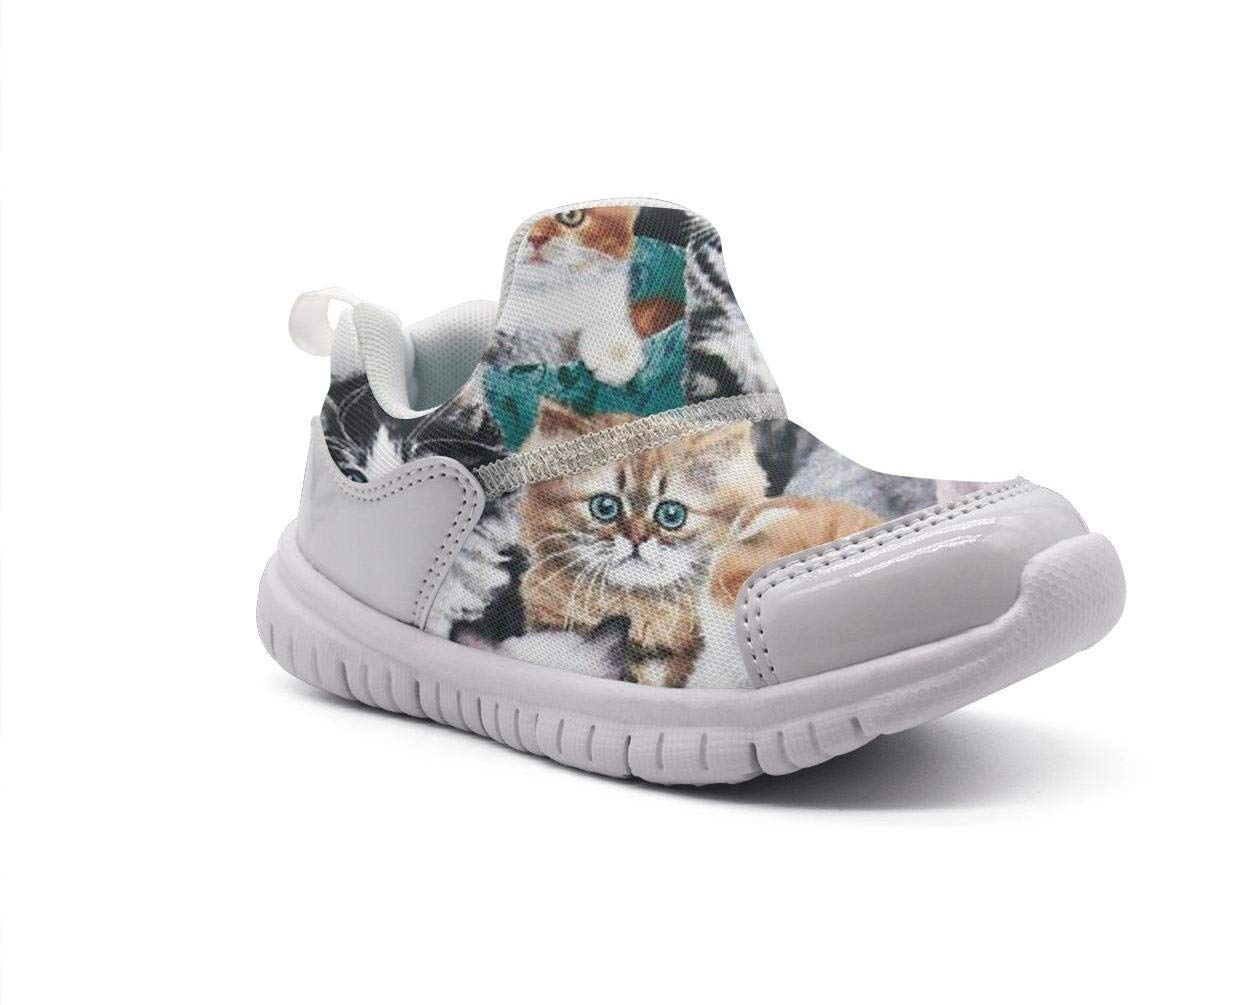 ONEYUAN Children Cute Kitty Cat Baby Kid Casual Lightweight Sport Shoes Sneakers Walking Athletic Shoes